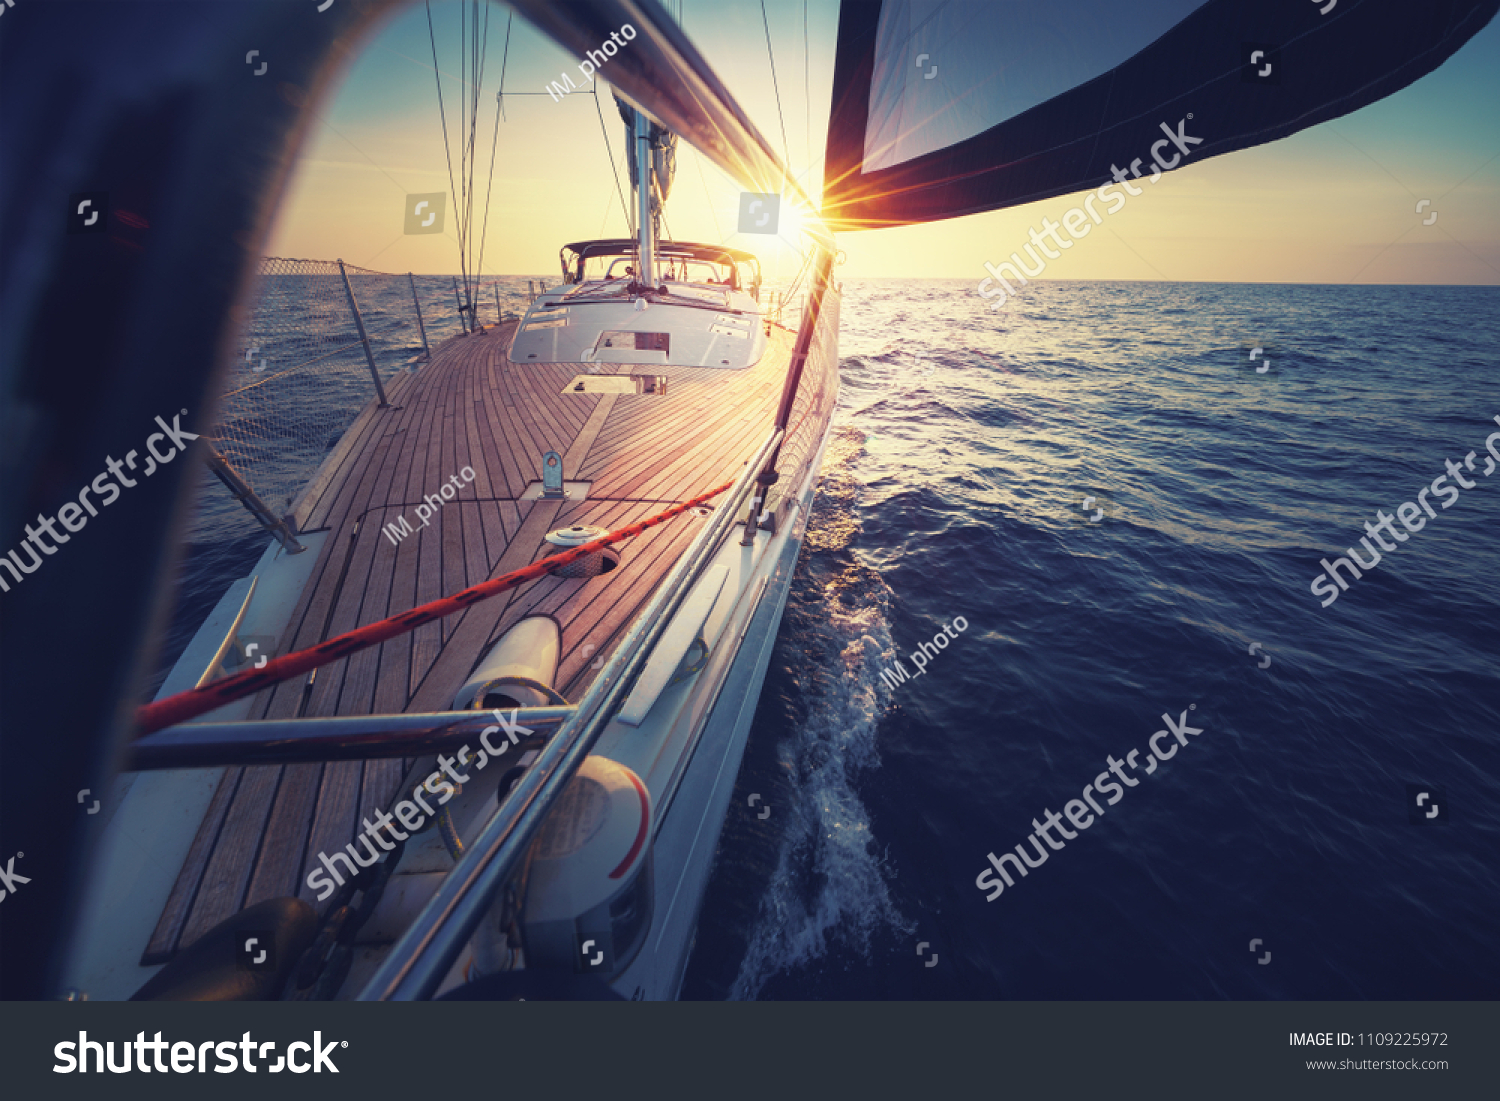 Sunset at the Sailboat deck while cruising / sailing at opened sea. Yacht with full sails up at the end of windy day. Sailing theme - background. Yachting background design. #1109225972